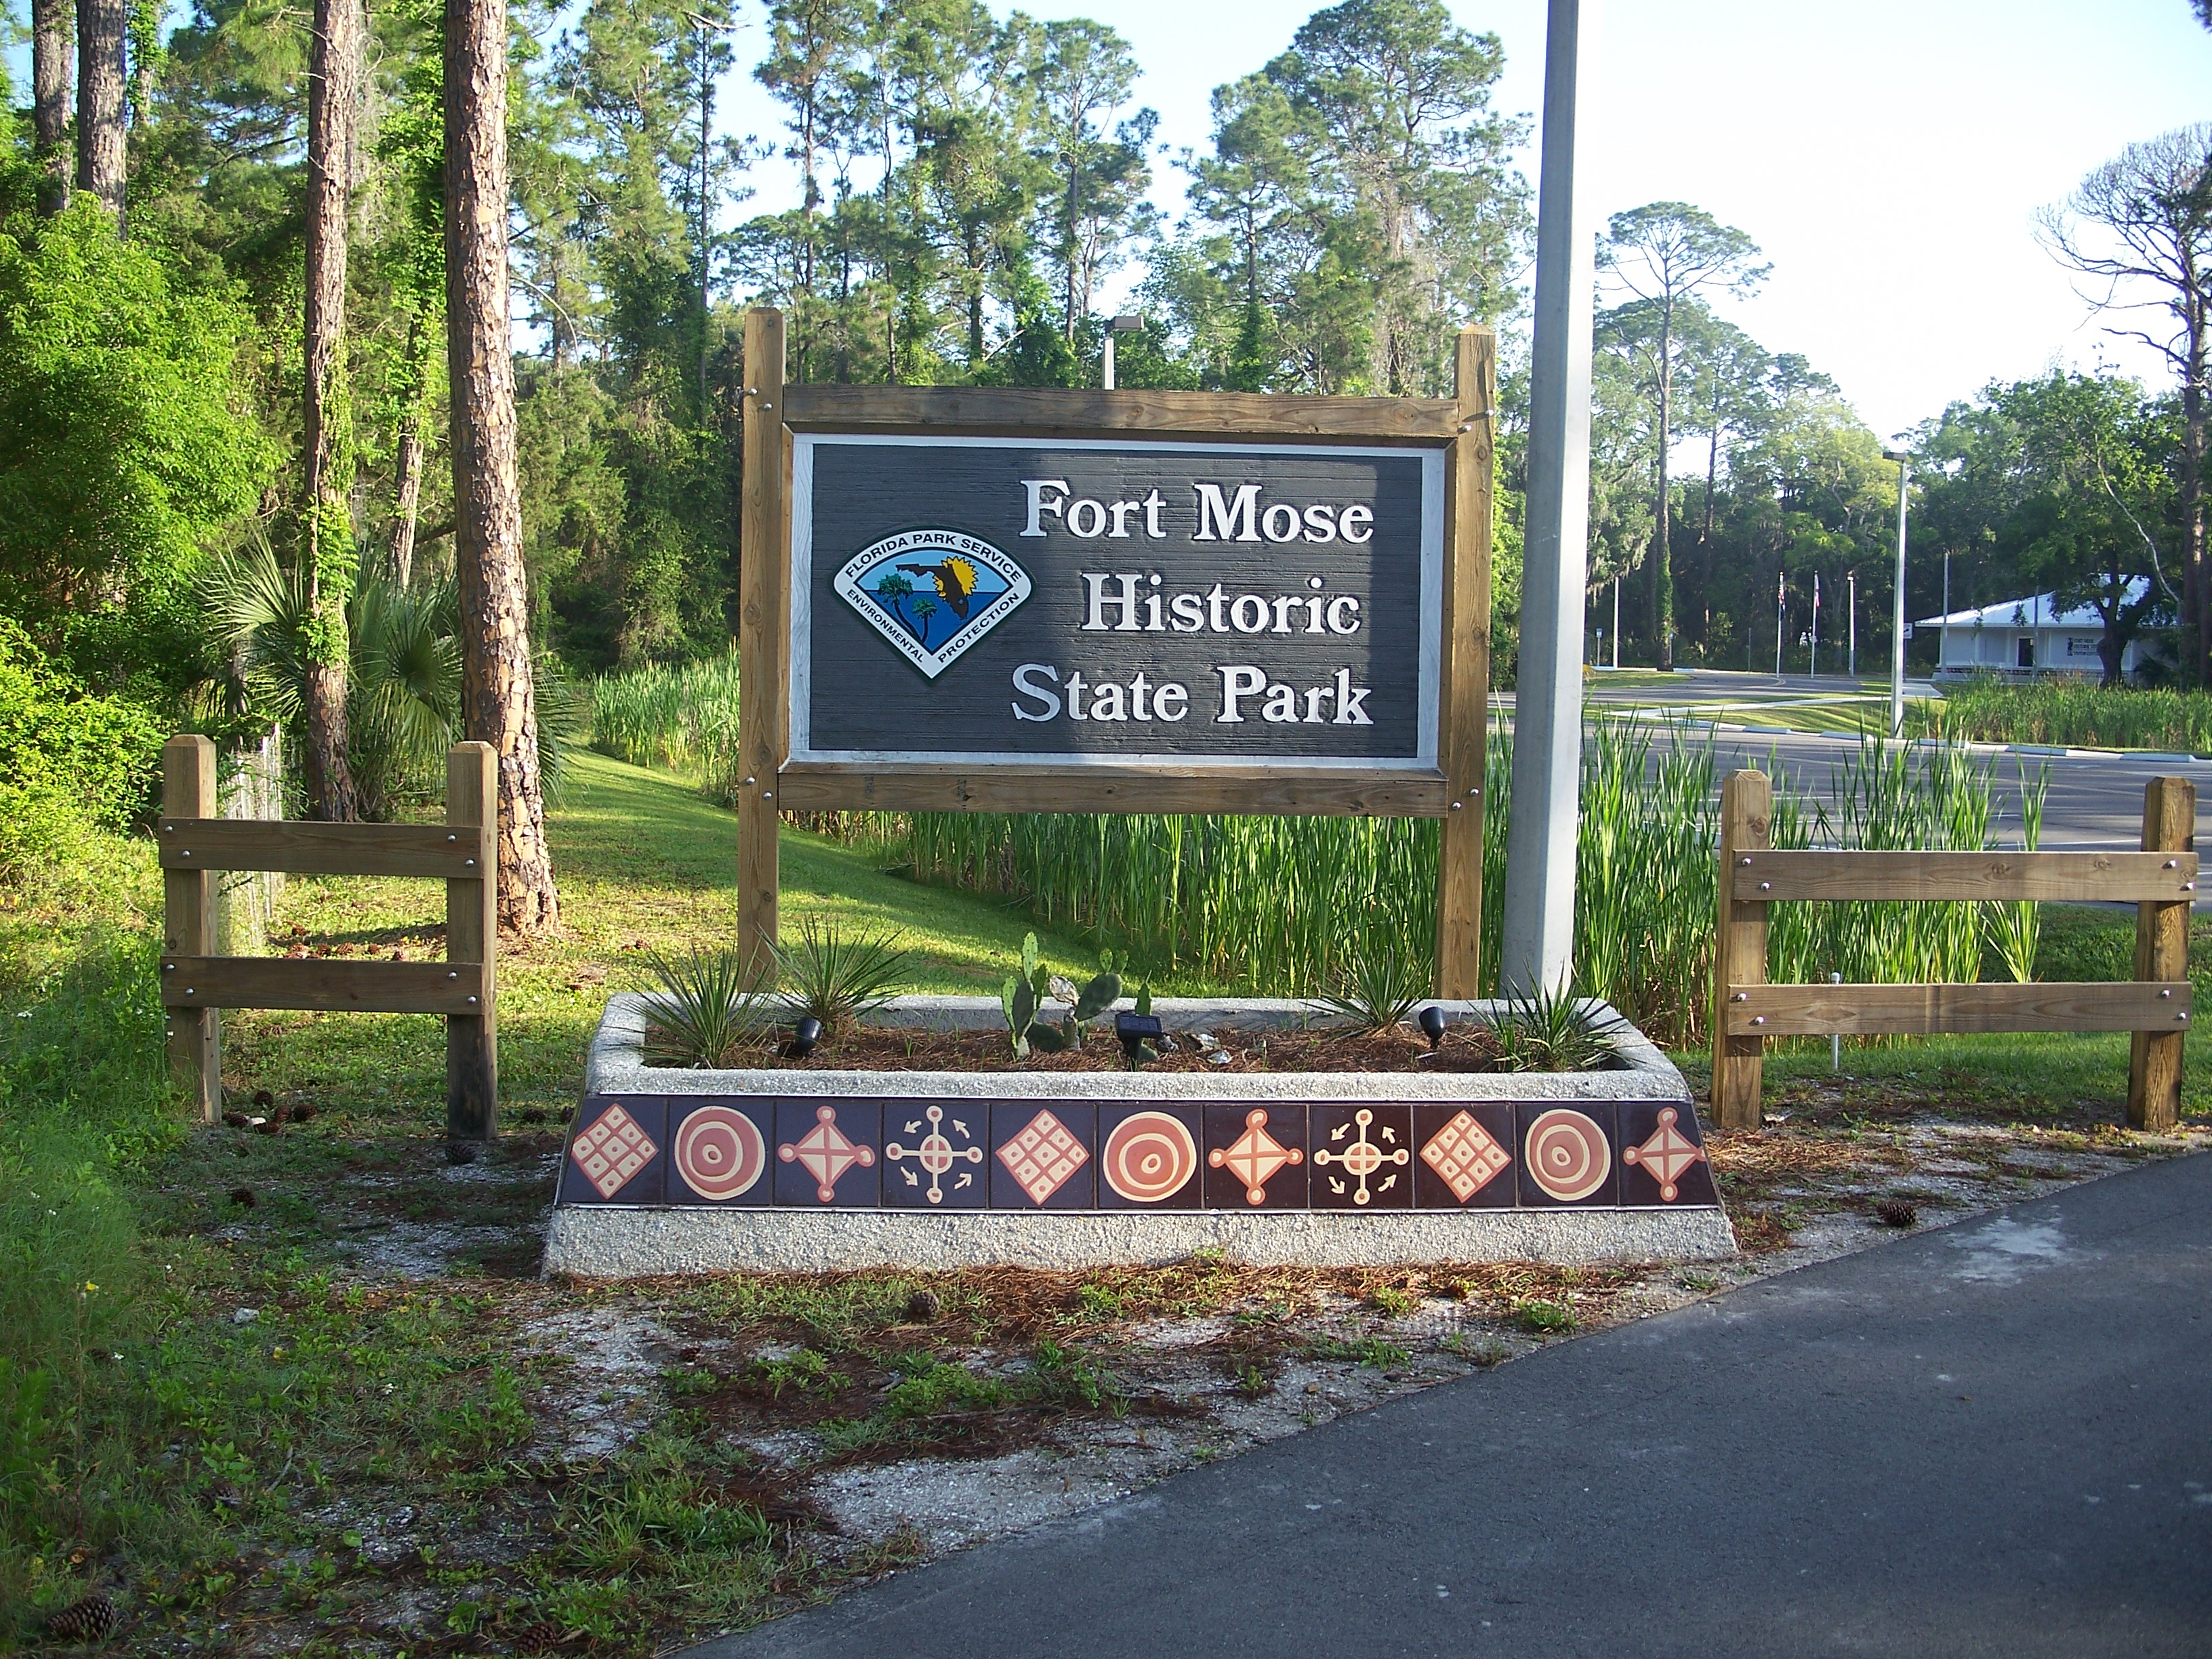 map of st augustine florida with File St Aug Fort Mose Entr01 on Grande Villas World Golf Village likewise Florida in addition Greenleaf Village At Nocatee furthermore Ancientcitychinchillas weebly additionally City.